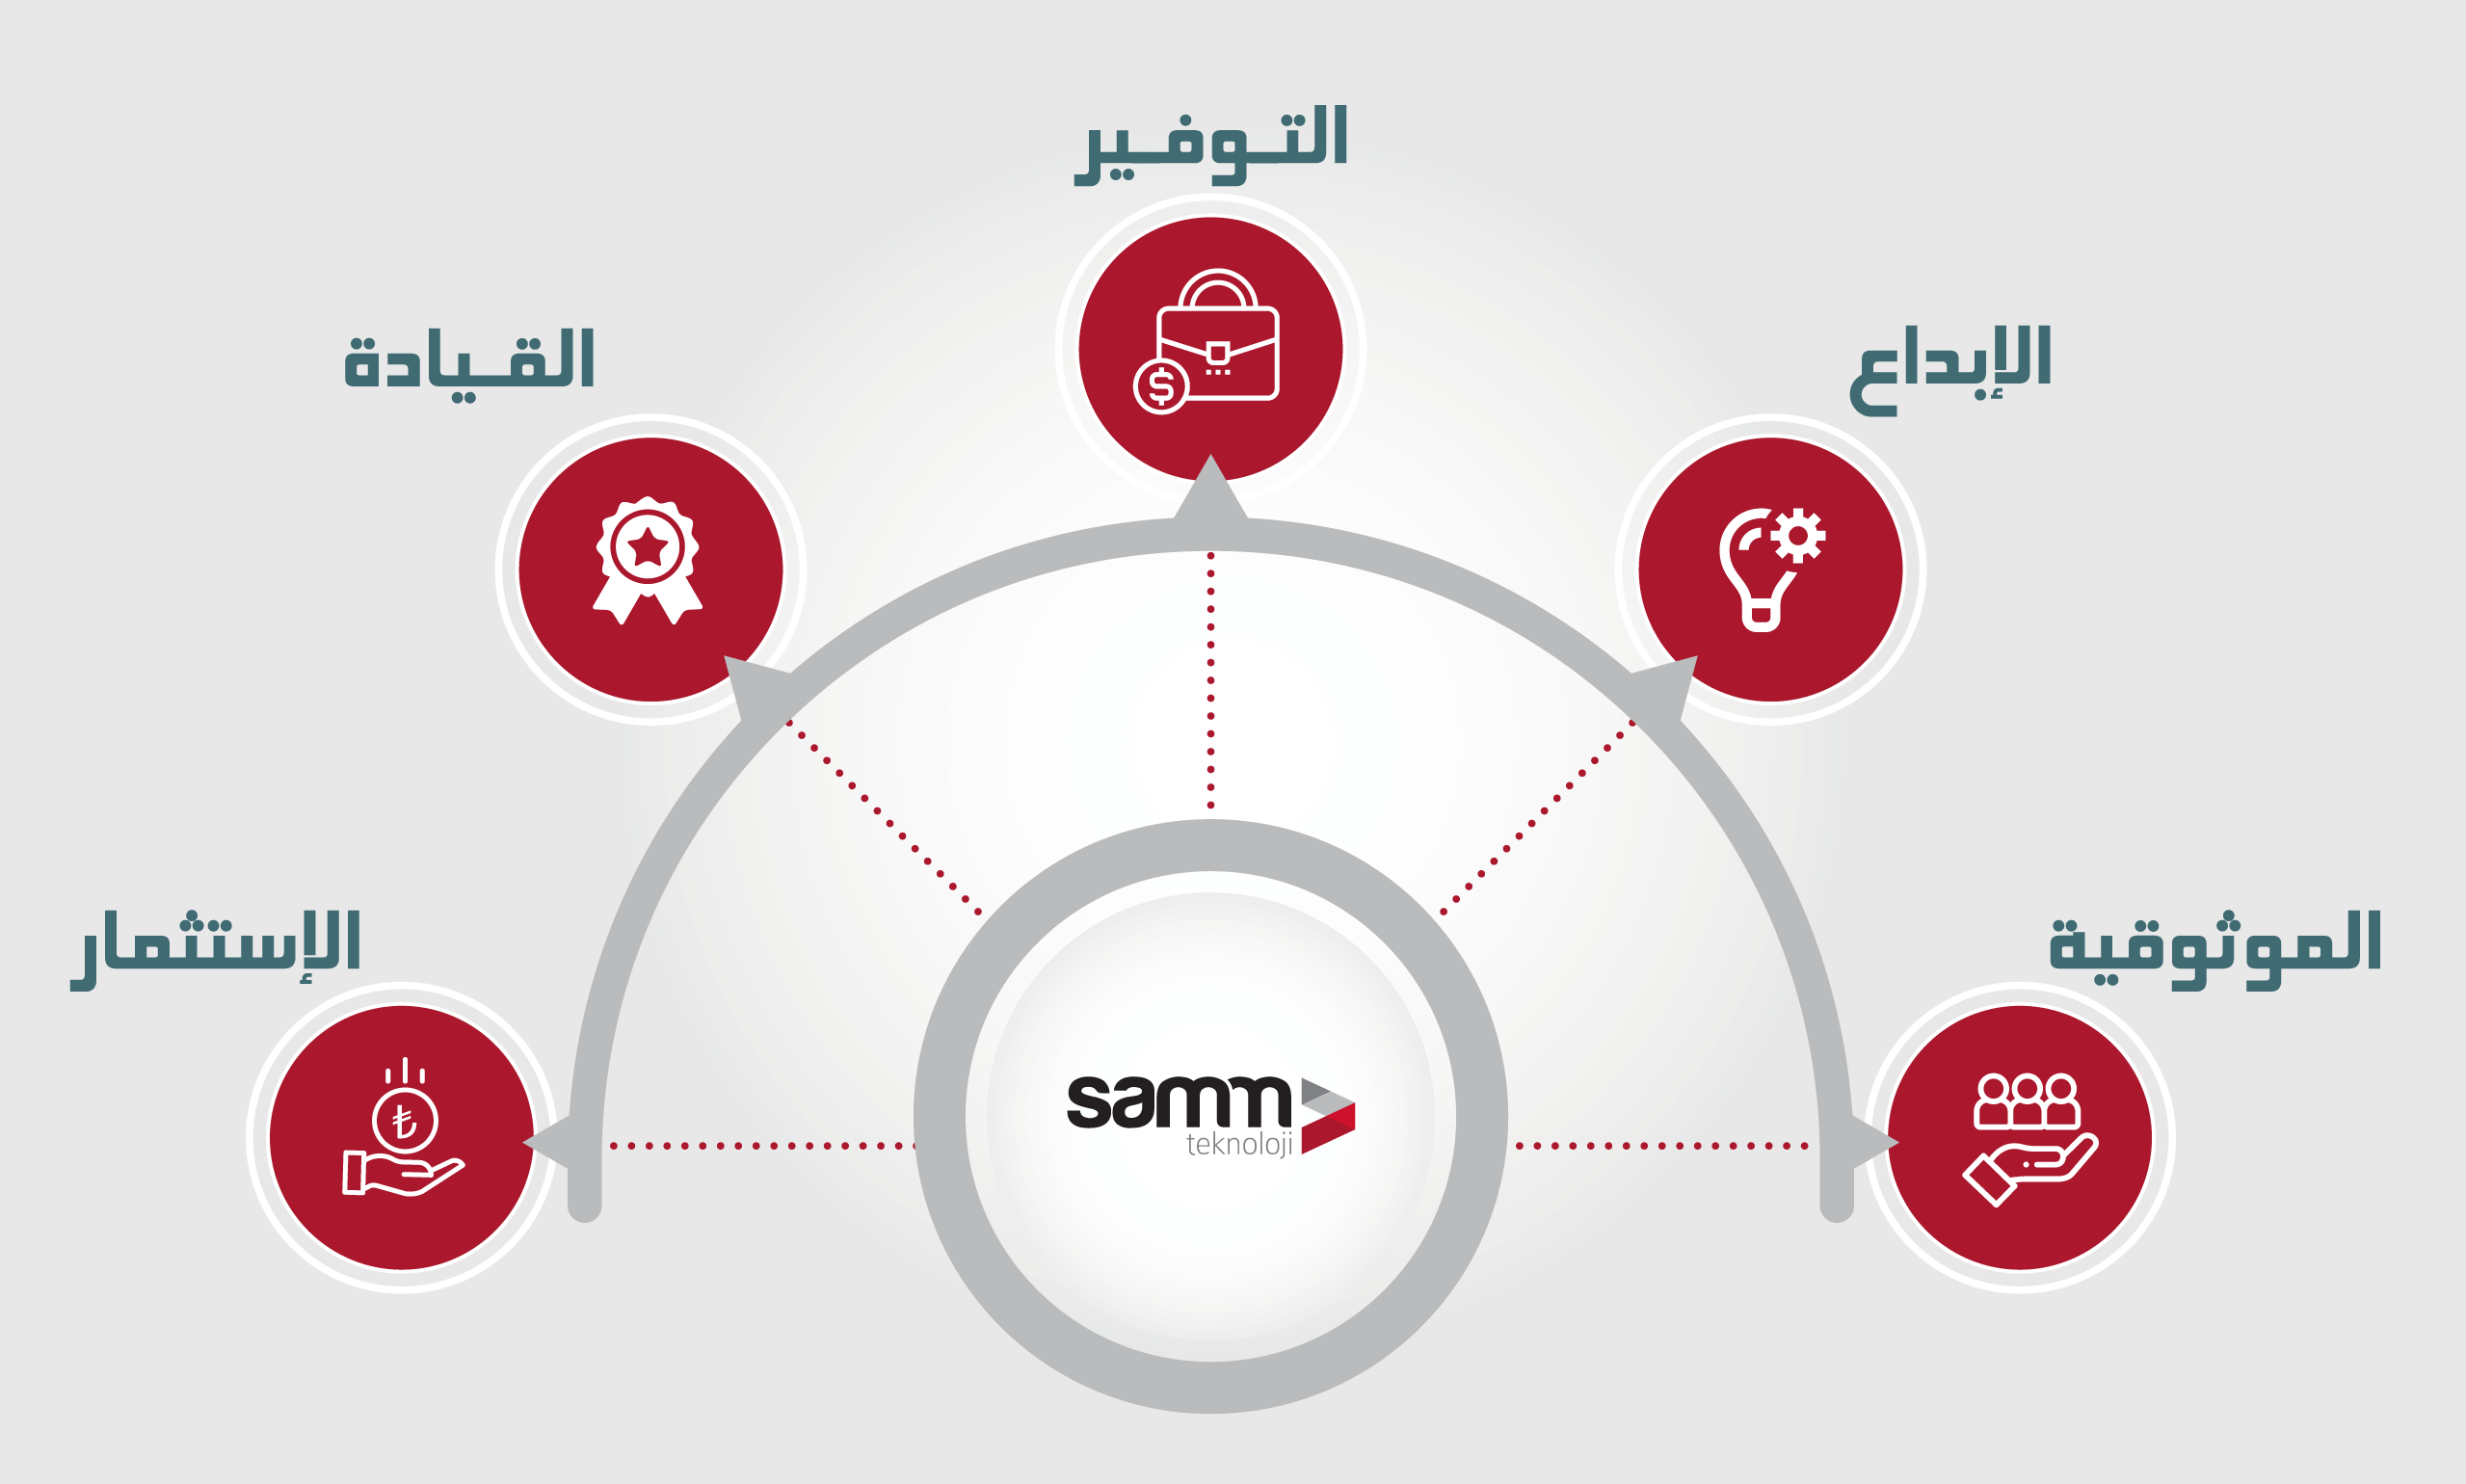 Samm Teknoloji Our Values - BE A LEADER - INVEST - SAVE - BE TRUSTED - BE INNOVATIVE